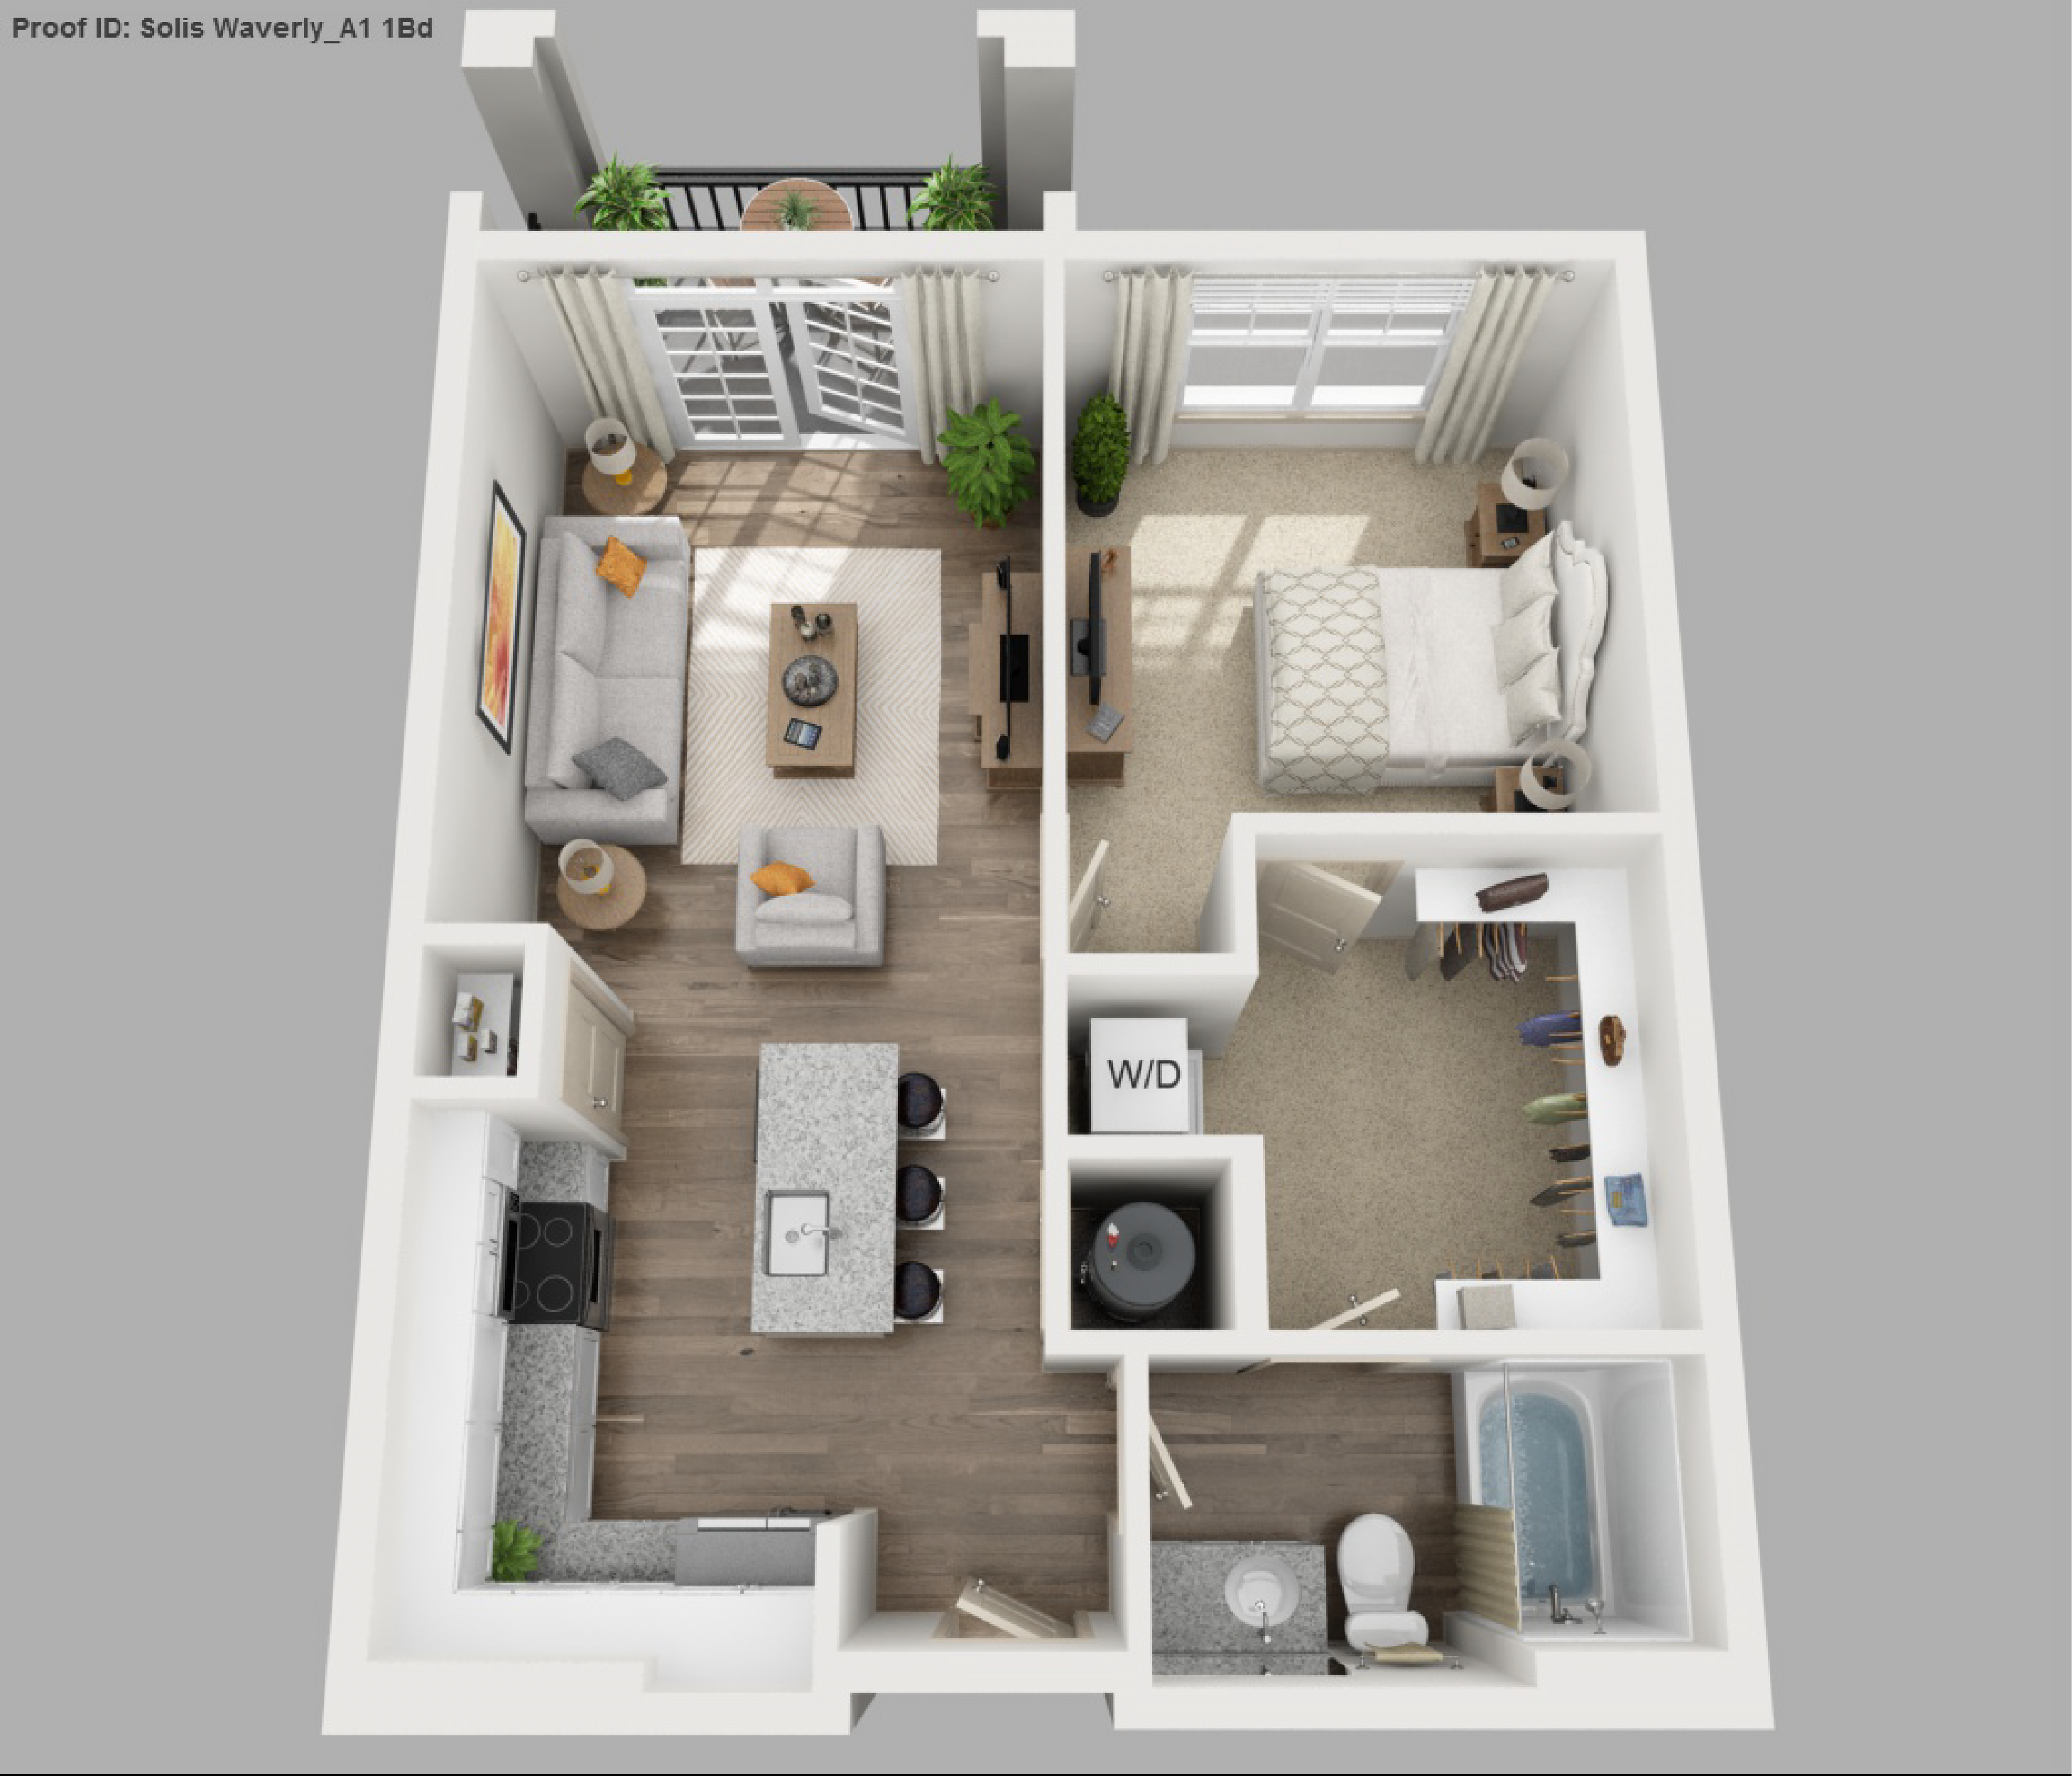 One bedroom apartments floor plans house plans for Apartment design plans 3d